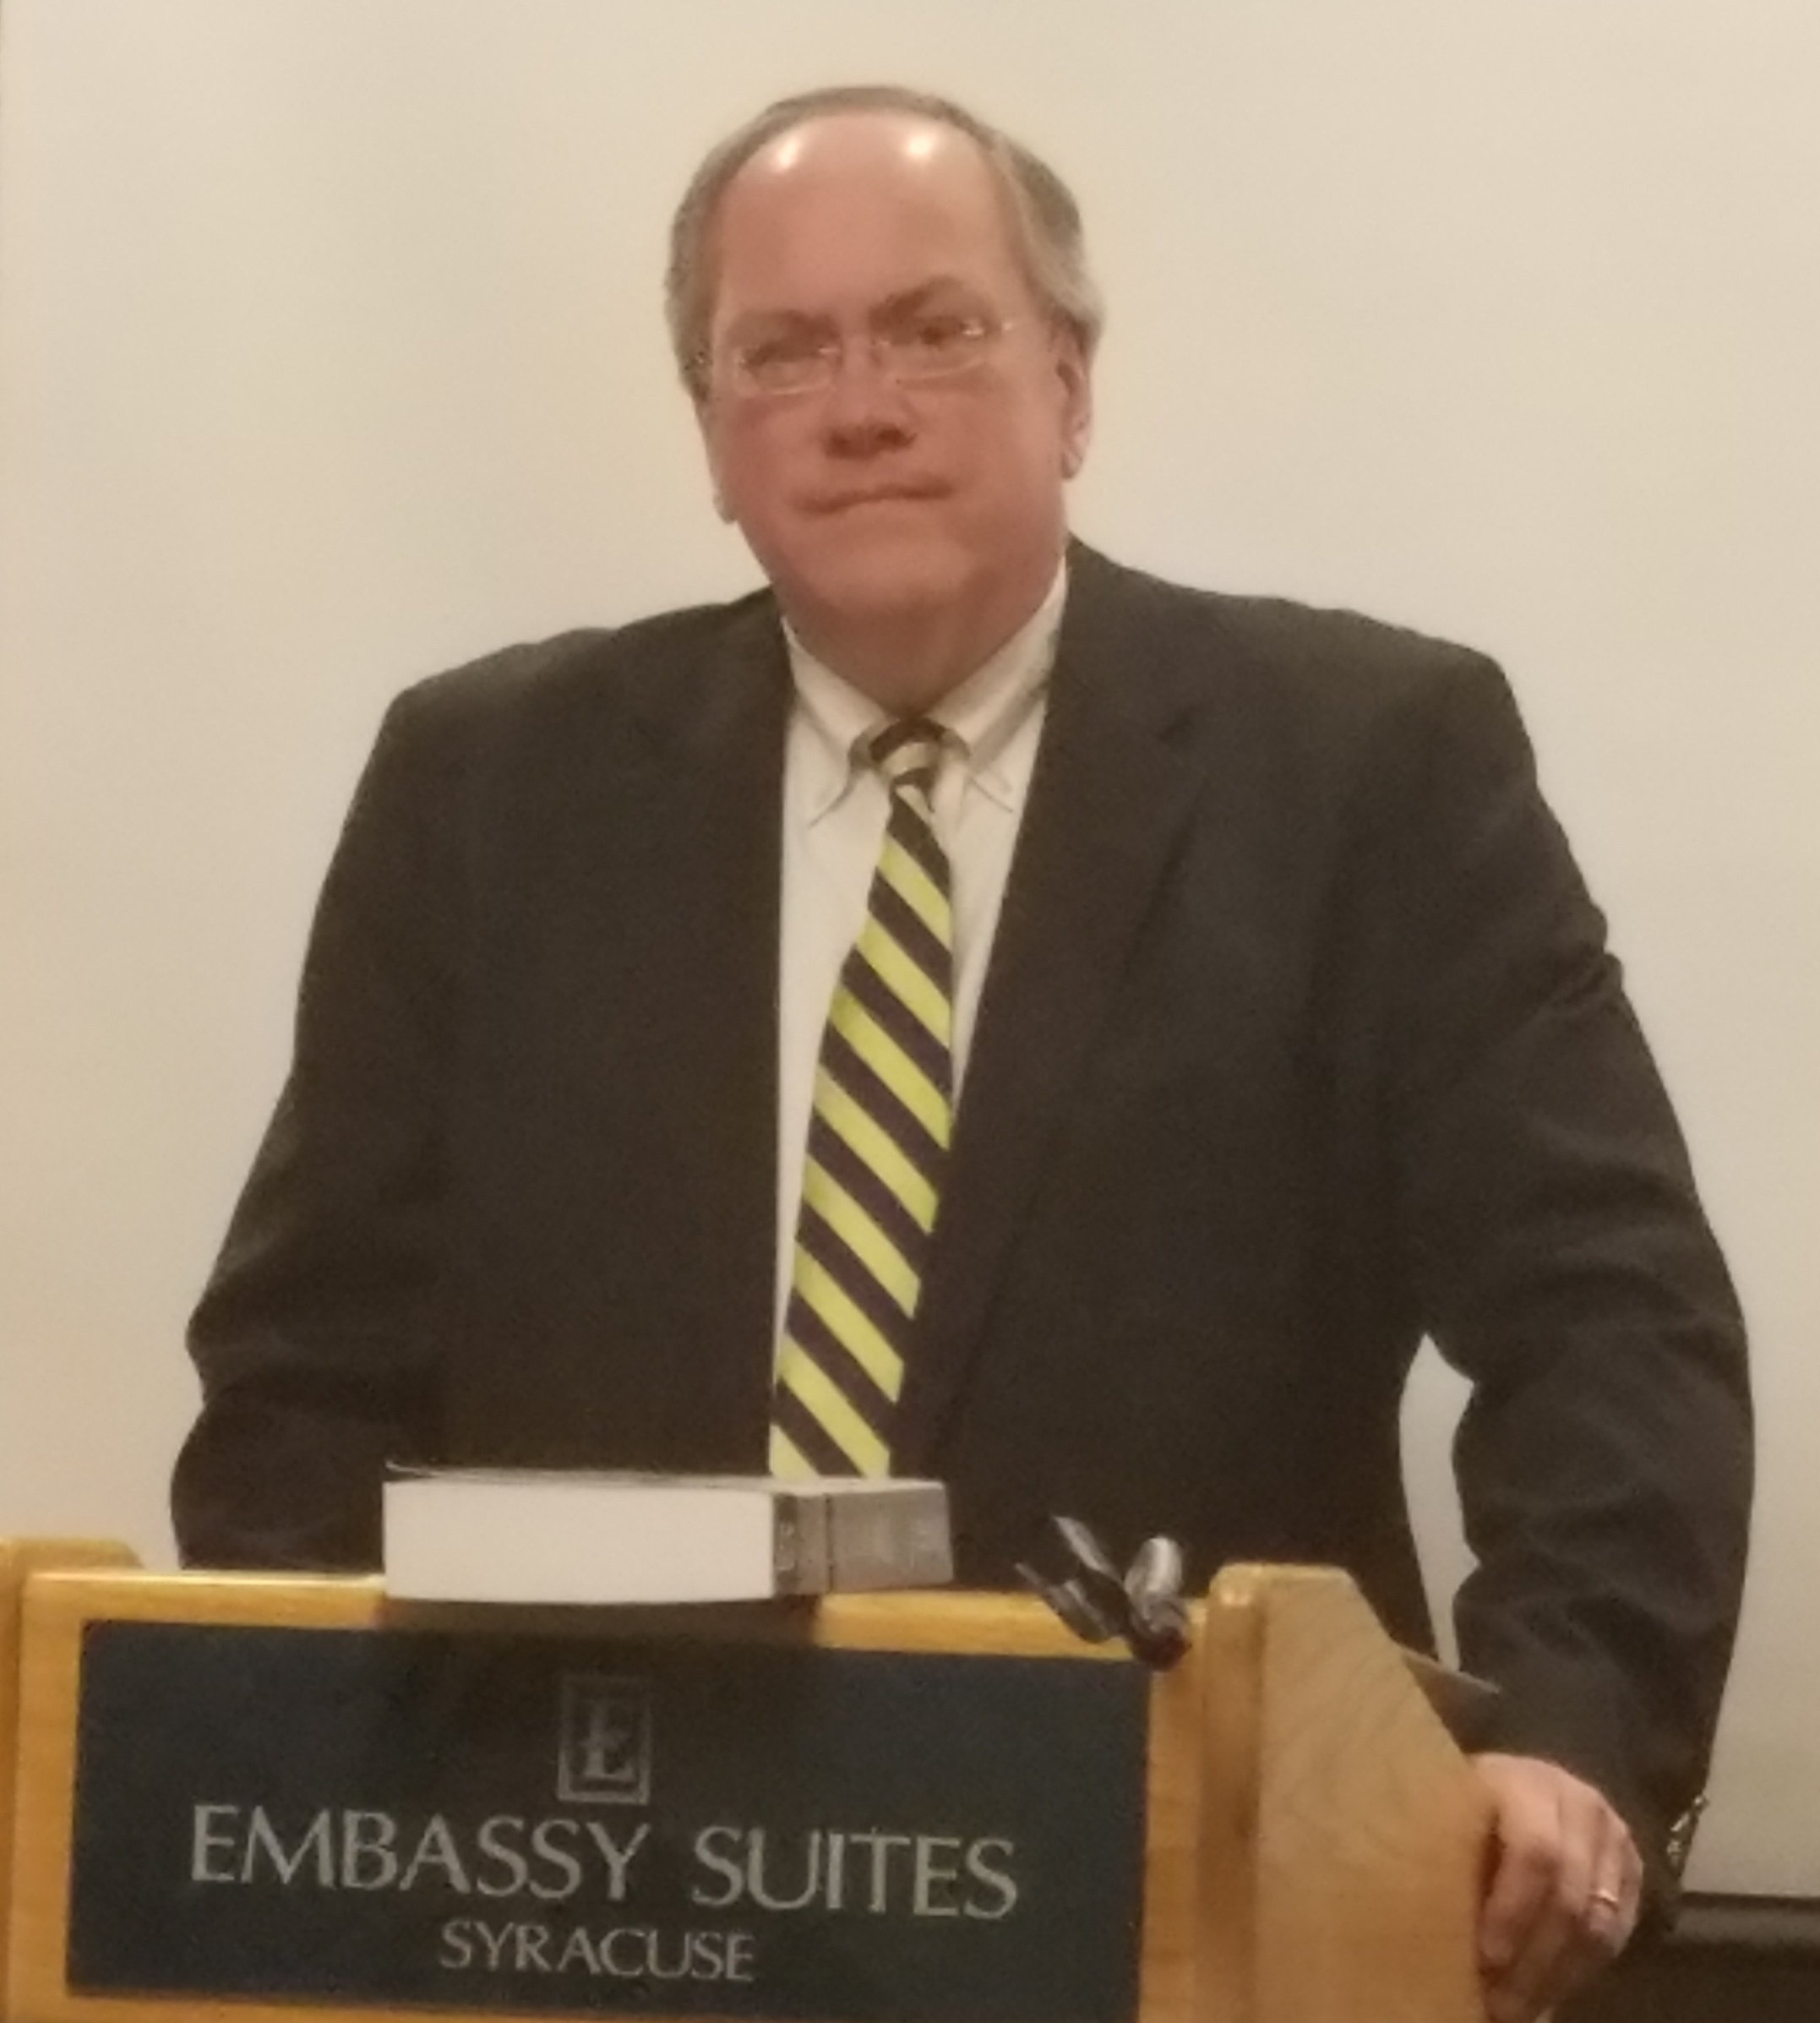 Photo of James T. Snyder, Esq., at lecture podium, instructing at a CLE.